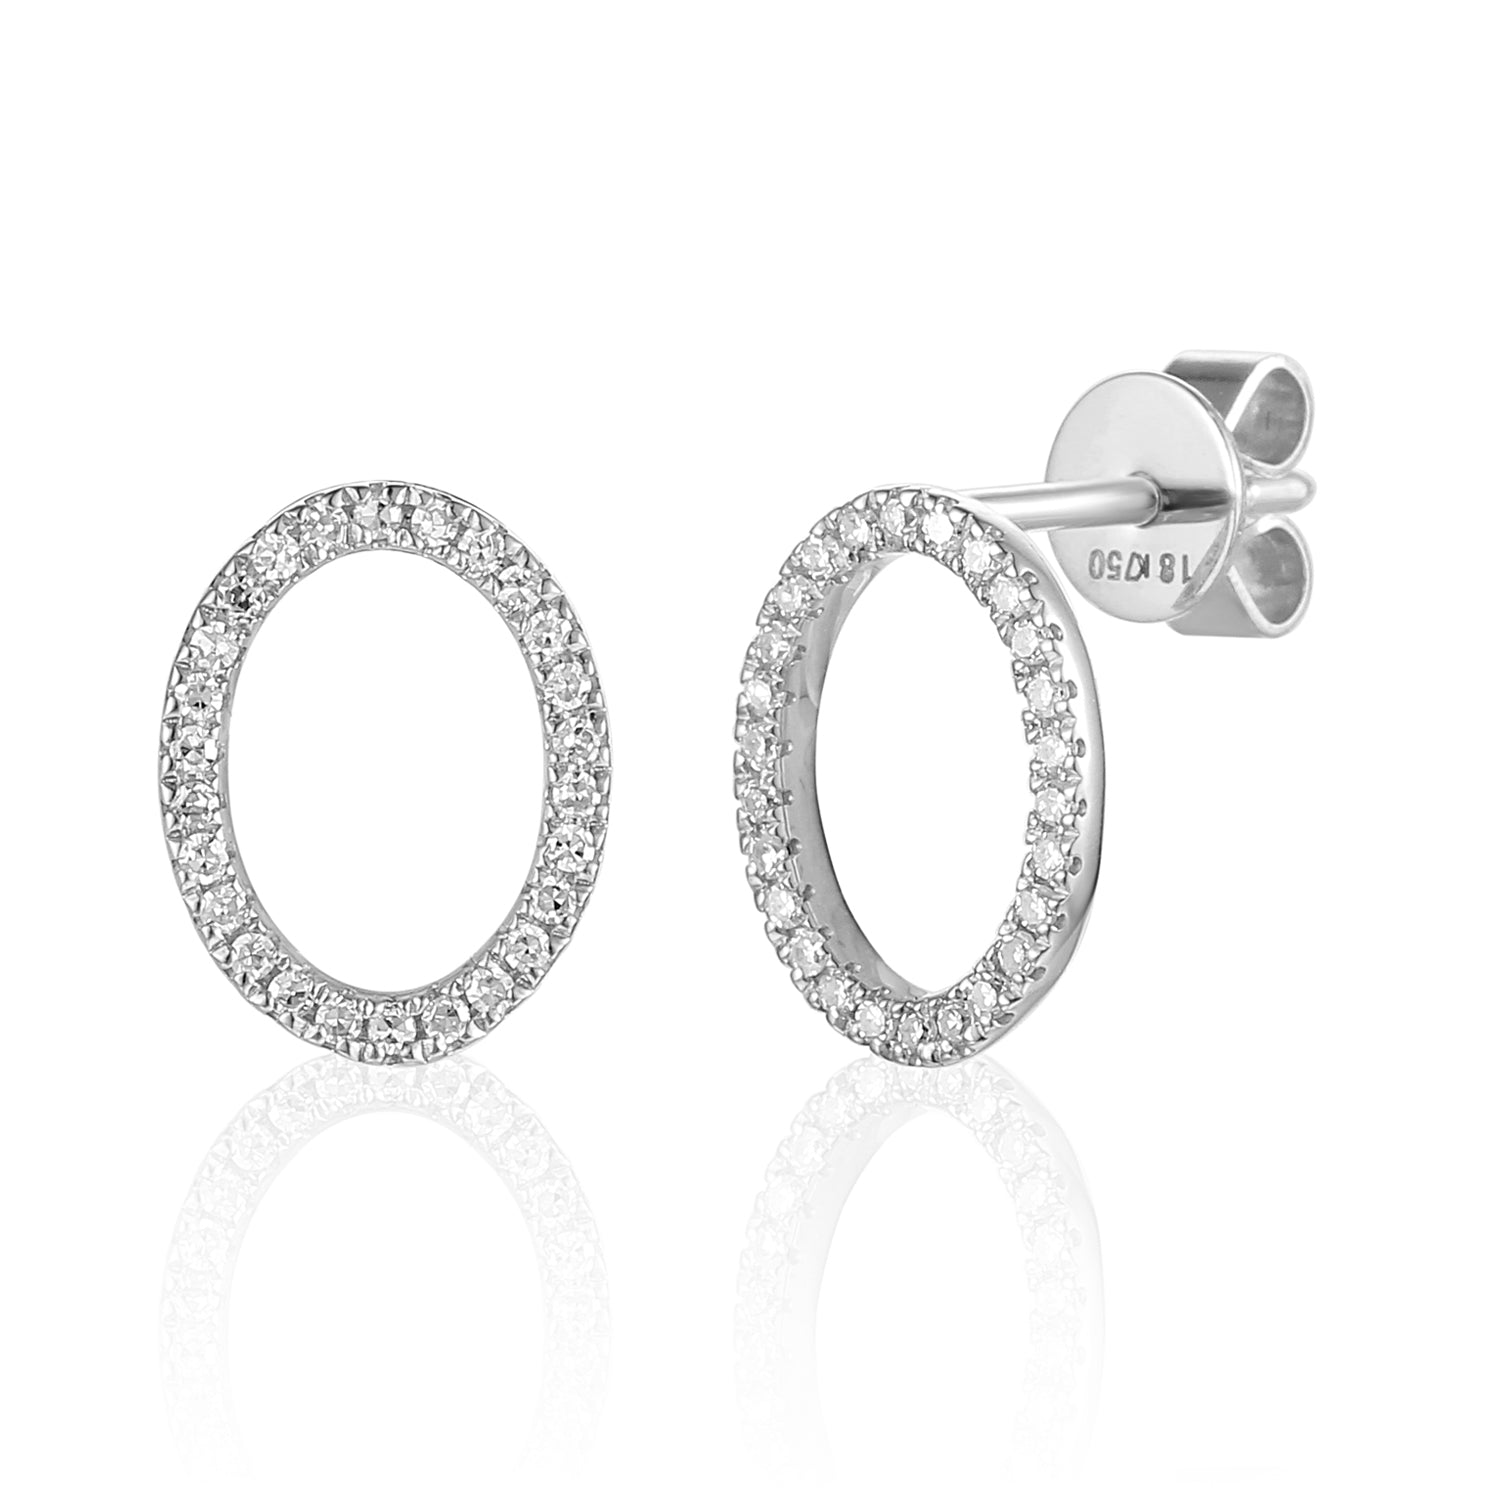 beauty ctw called will in heart diamond gold square round every a vs bygxkfe stud sing h womens make earrings white